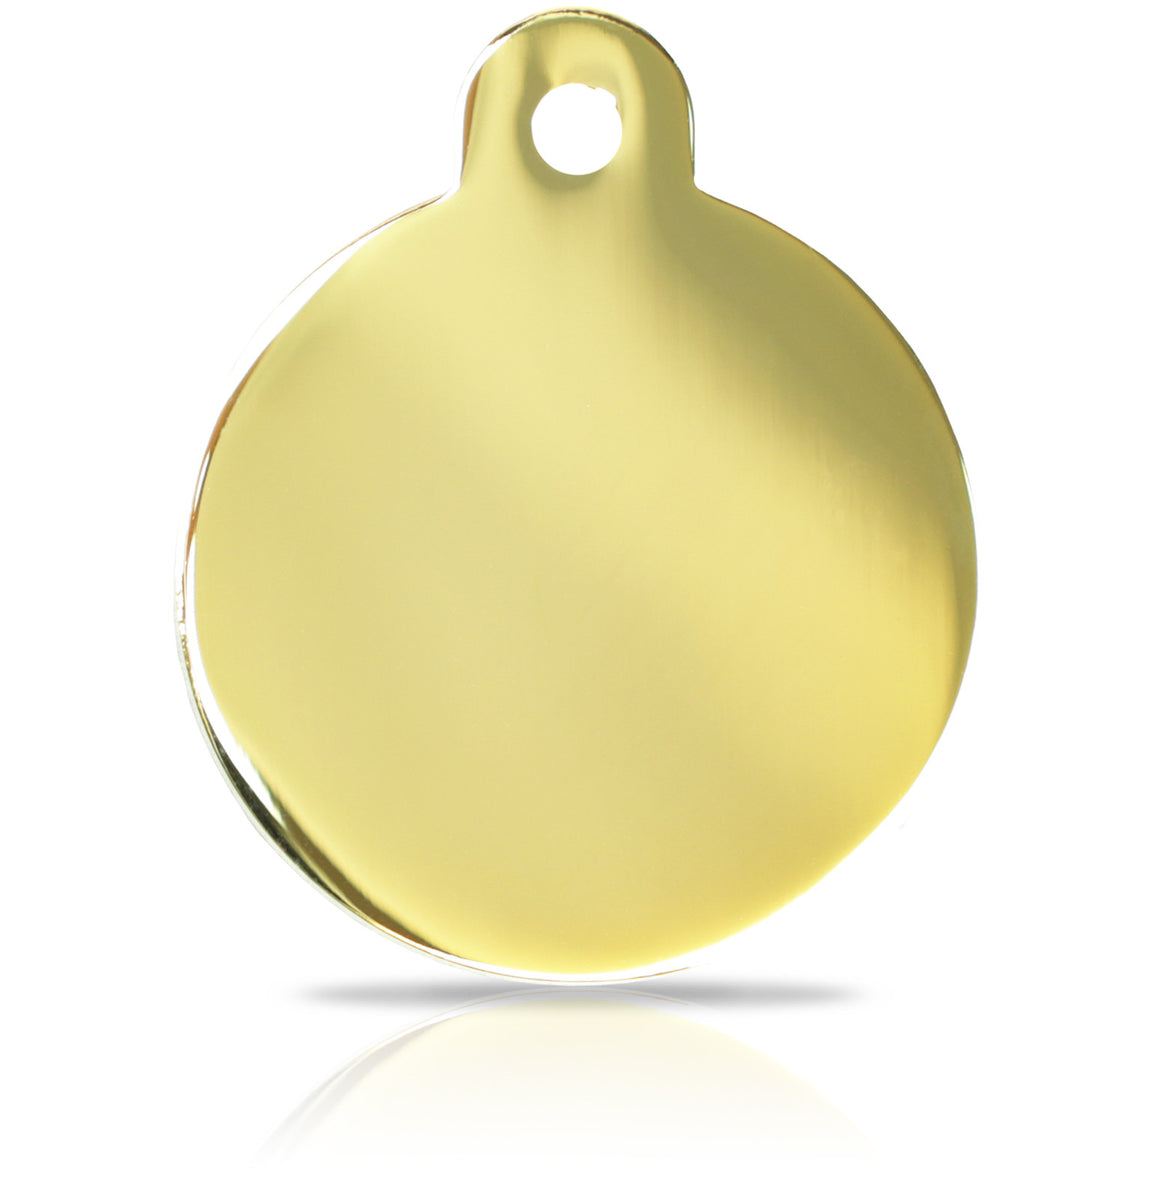 TaggIT Engraving Prestige Large Disc Gold iMarc Pet ID Tag